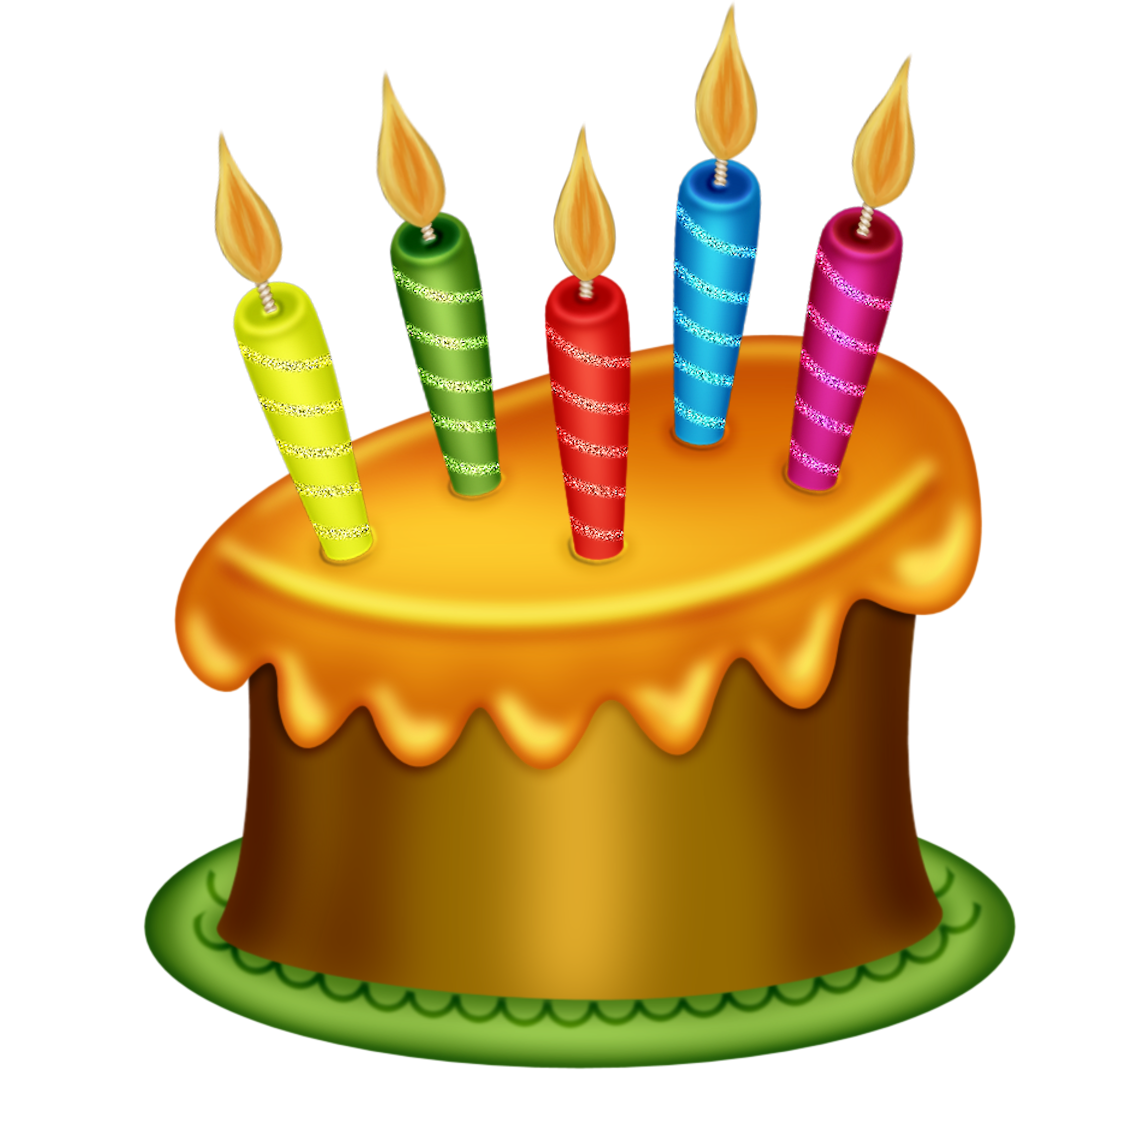 Birthday Celebration Cake Png image #26267